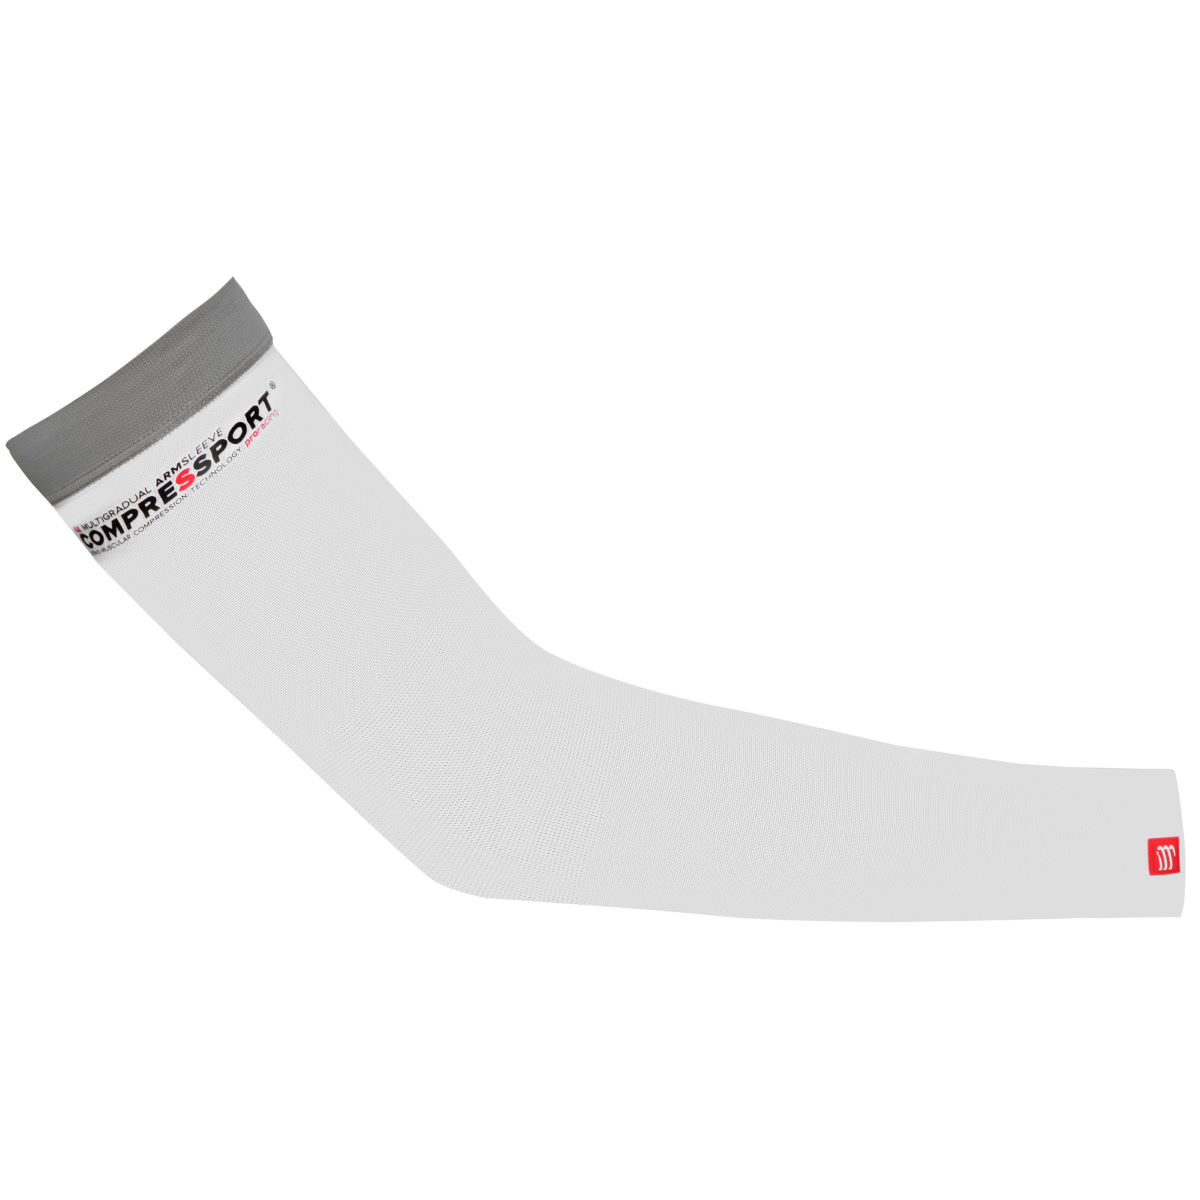 Compressport - Pro Racing 袖套